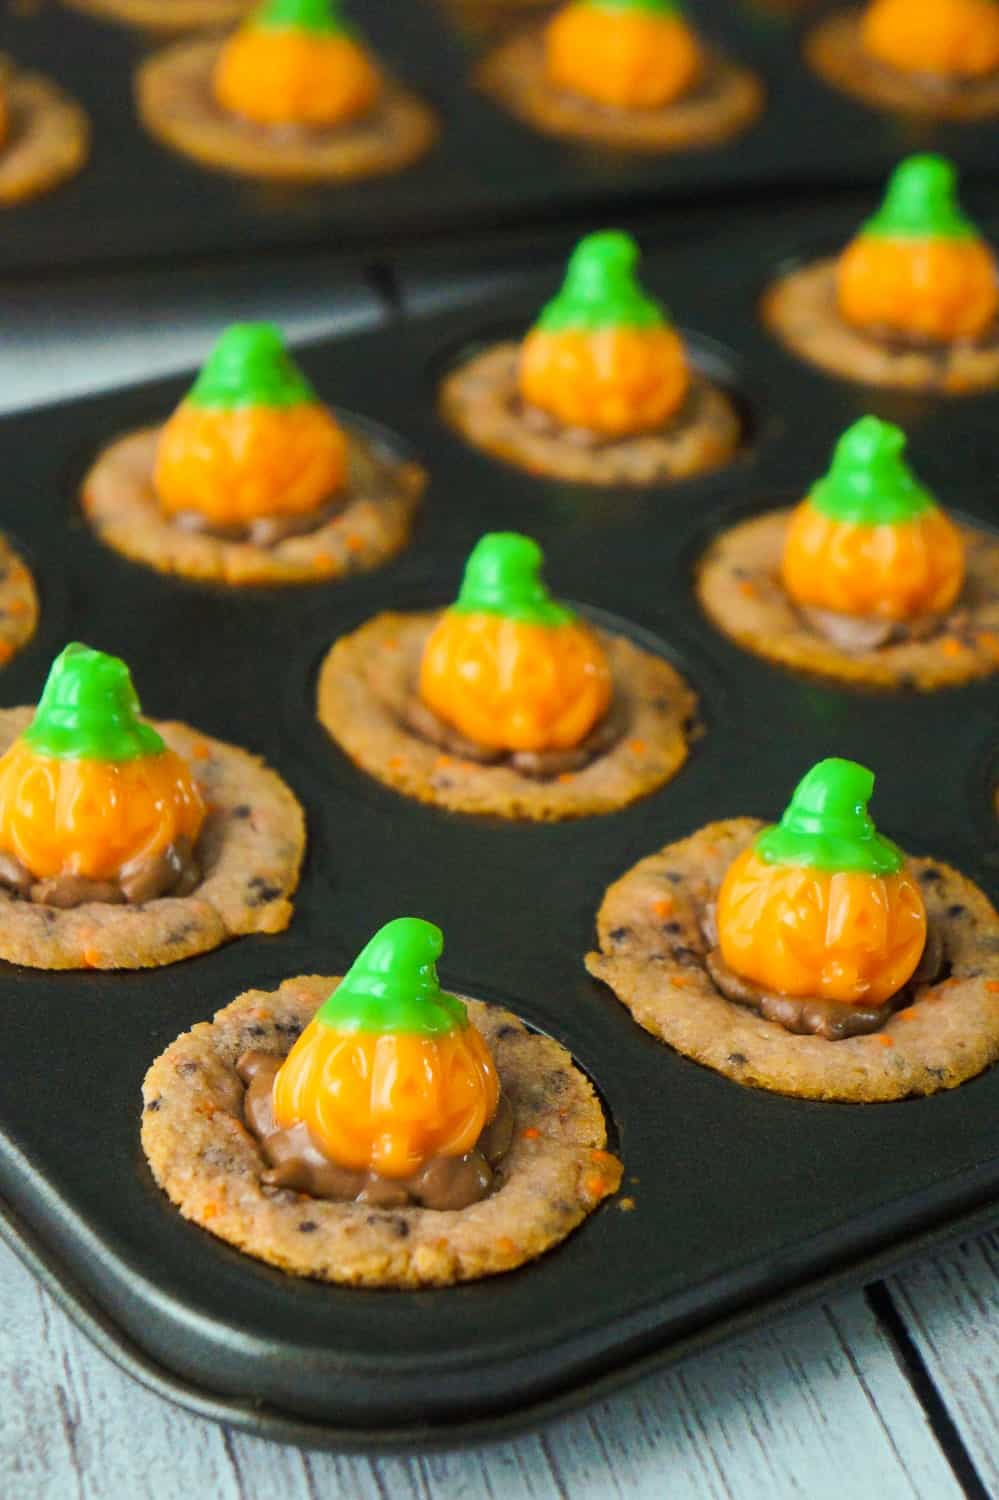 Halloween Sugar Cookie Cups are an easy dessert recipe your kids will love. These cute Halloween cookies are filled with milk chocolate and topped with pumpkin gummy candies.